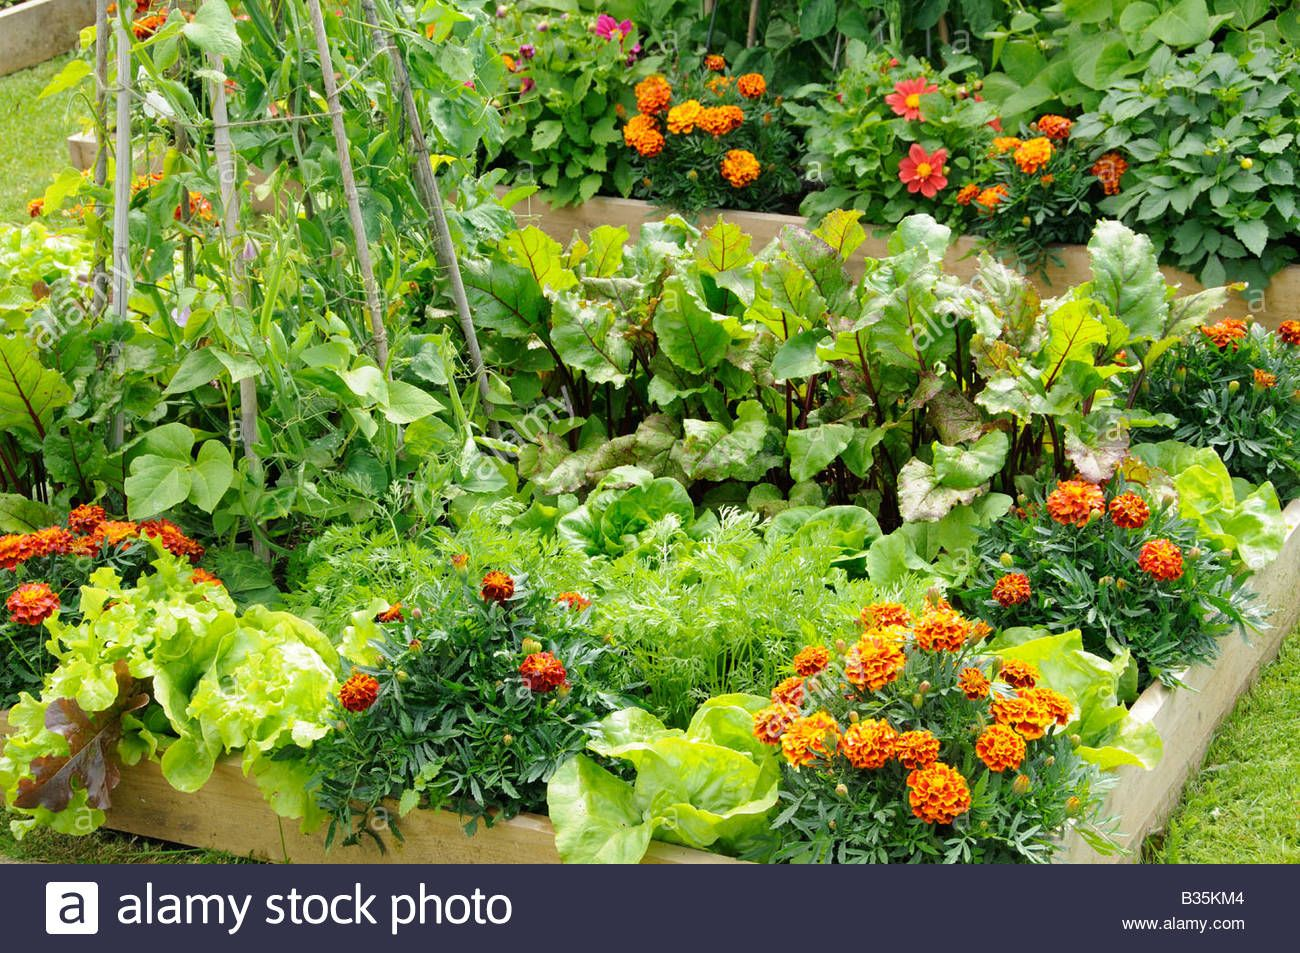 Summer Garden With Mixed Vegetable And Flower Potager Style Raised Beds Uk June Stock Photo Vegetable Garden Potager Garden Garden Features